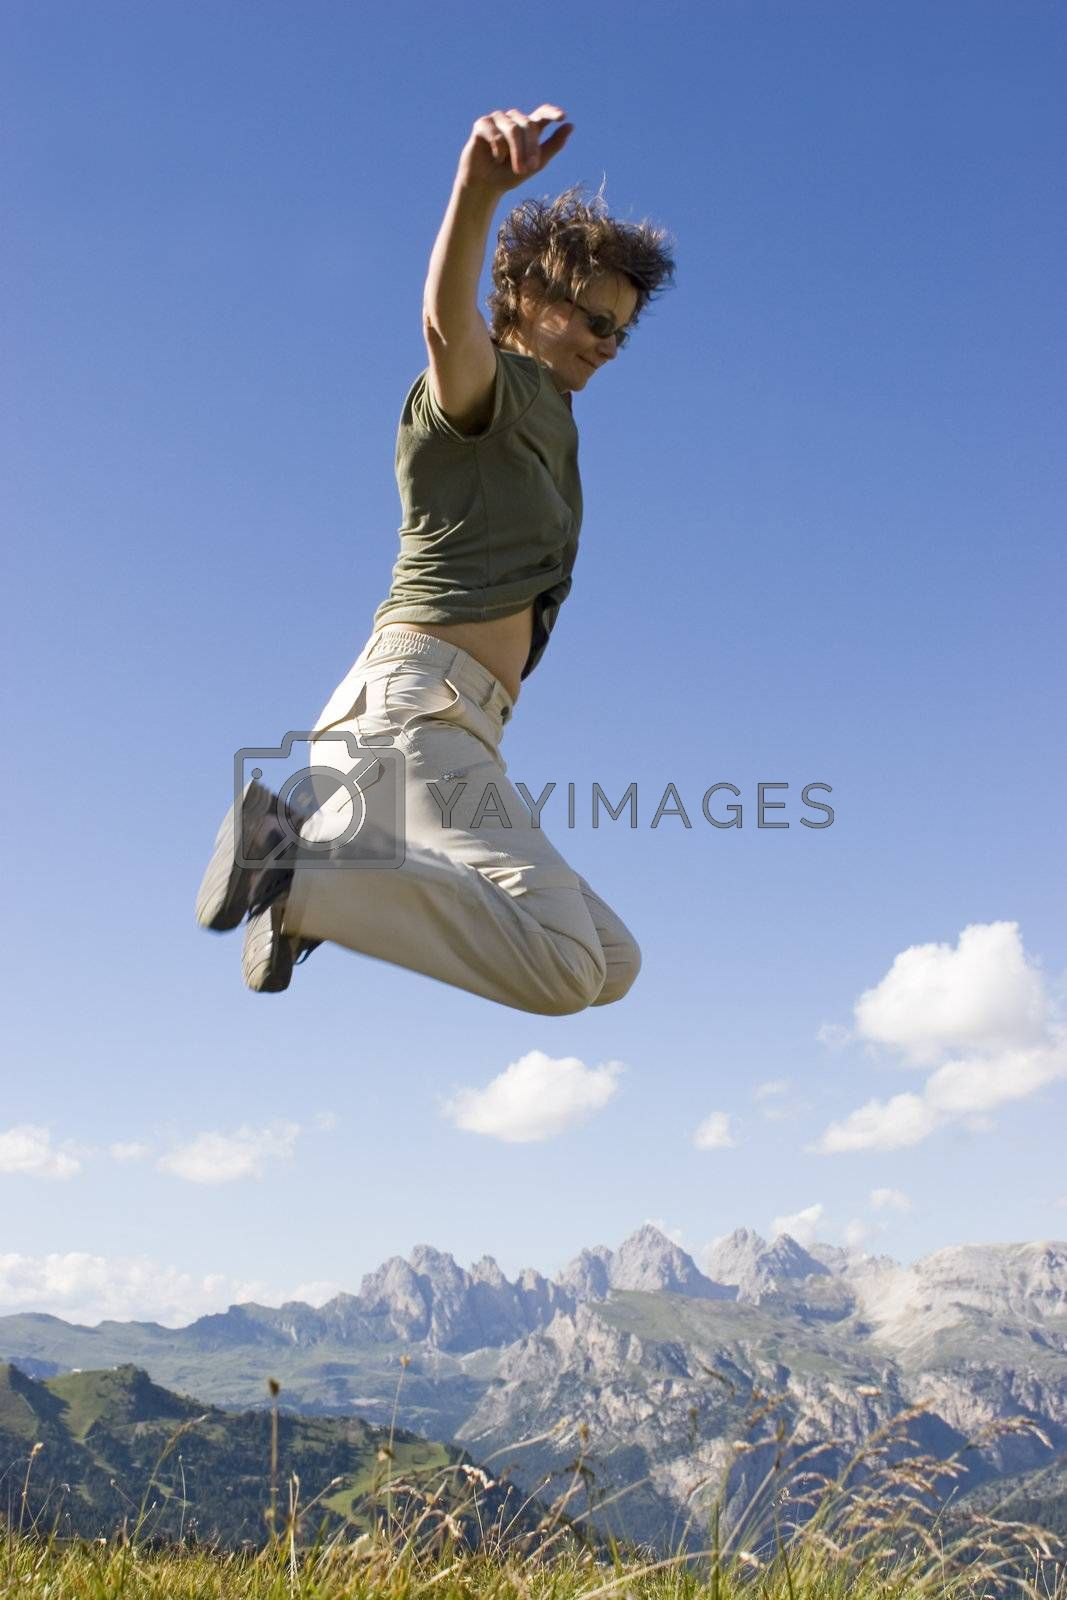 Real photo of a happy woman jumping in front of a mountain landscape. Partially motion blurred. Sella - Dolomites